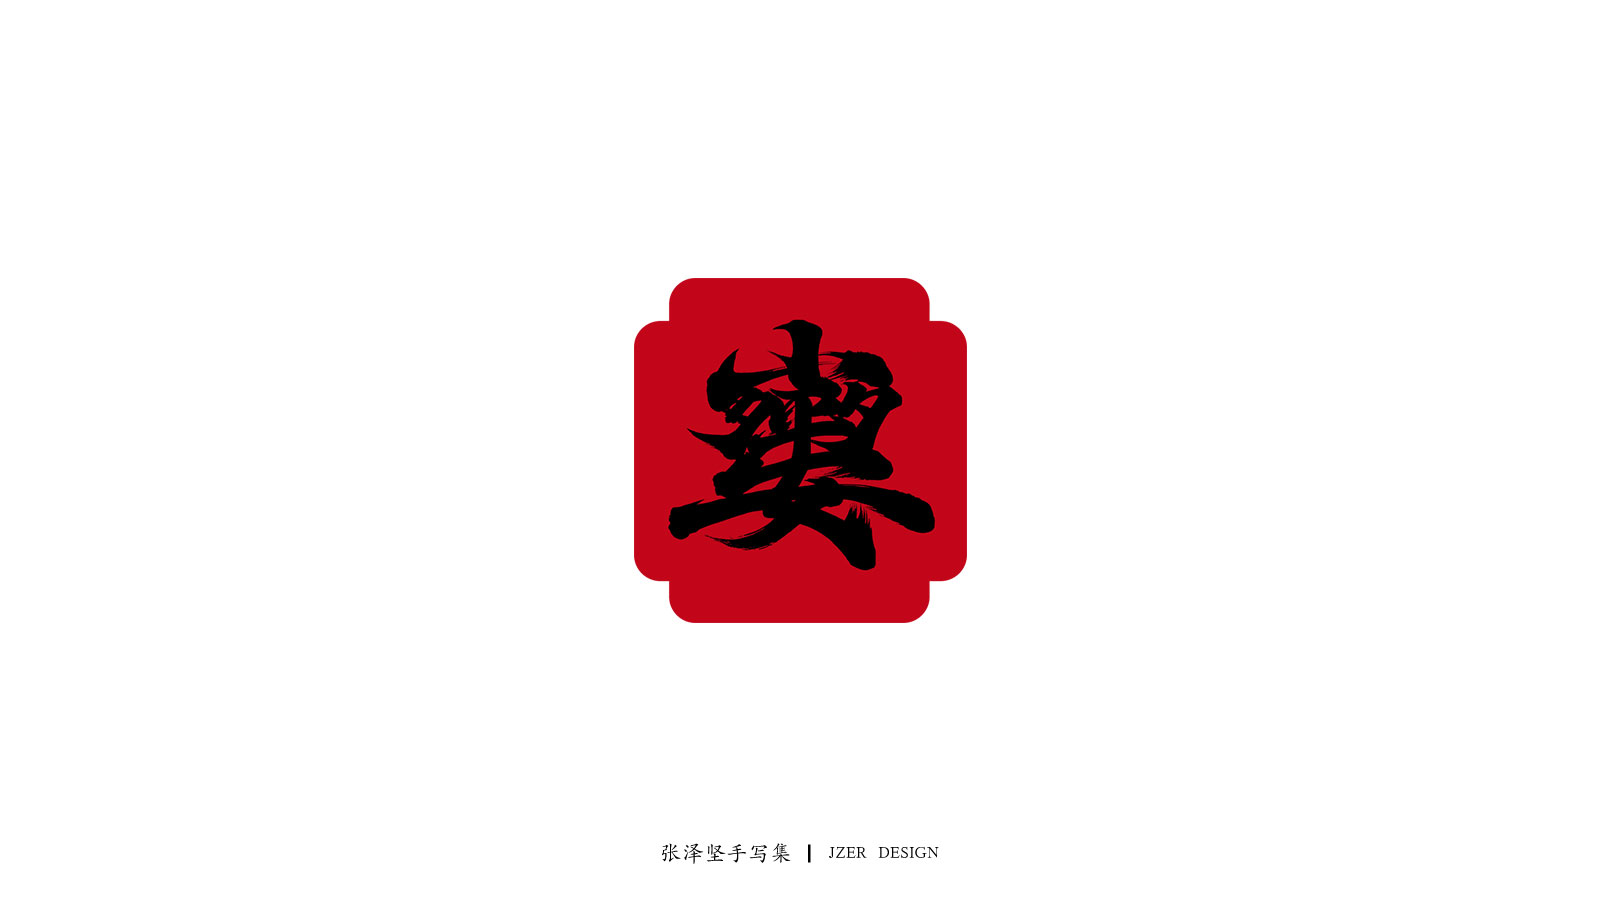 Common New Year greetings in Chinese characters